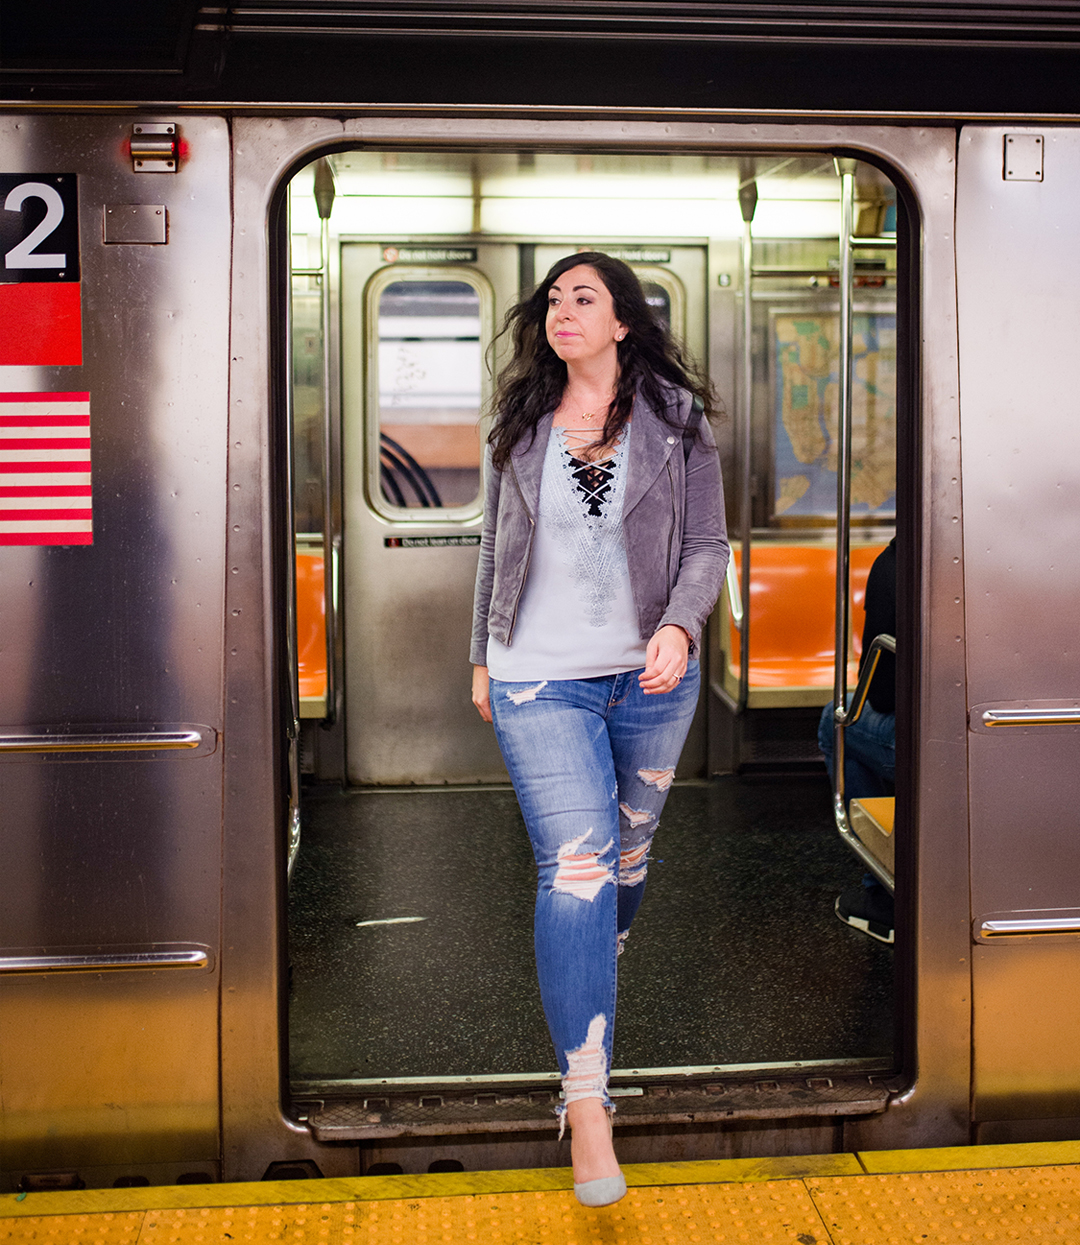 The fashionable commute outfit :: Effortlessly with Roxy